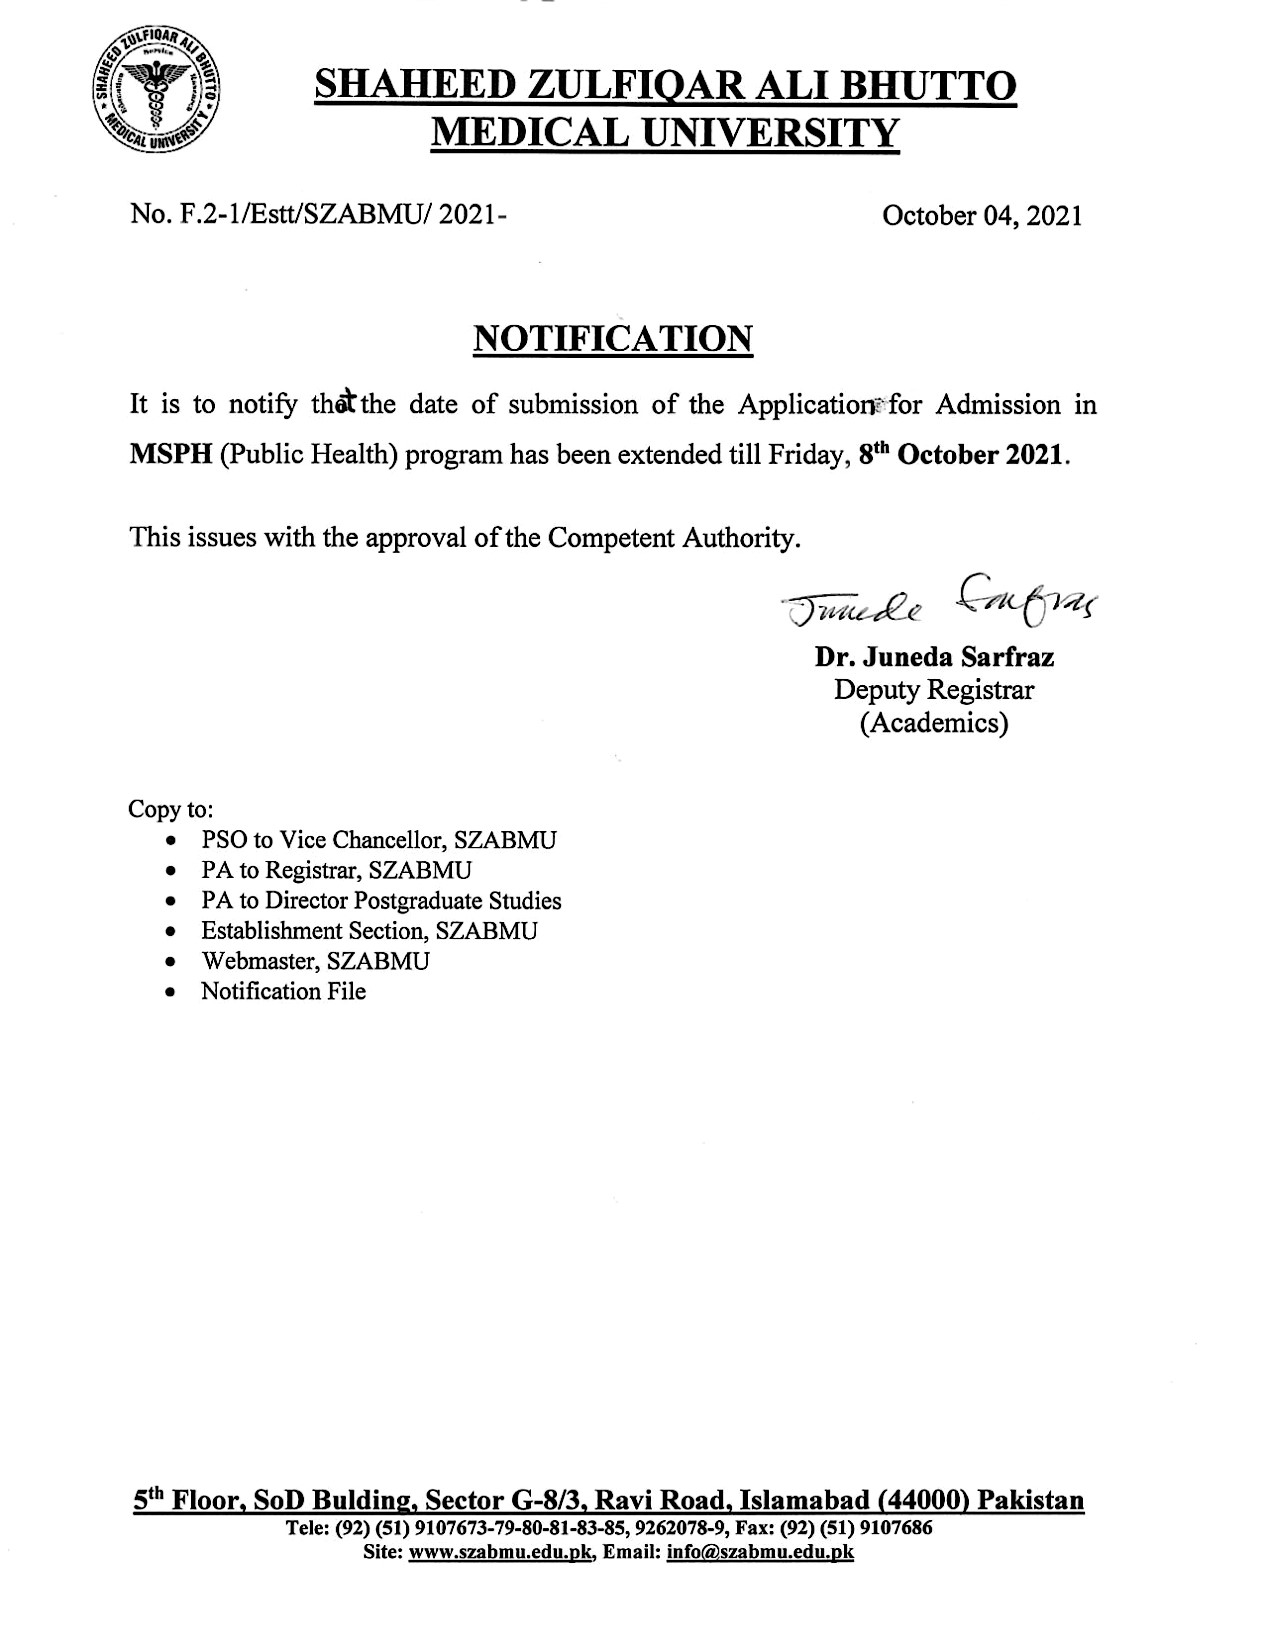 Admission in MSPH (Public Health) Program Date Extended till 08 October 2021